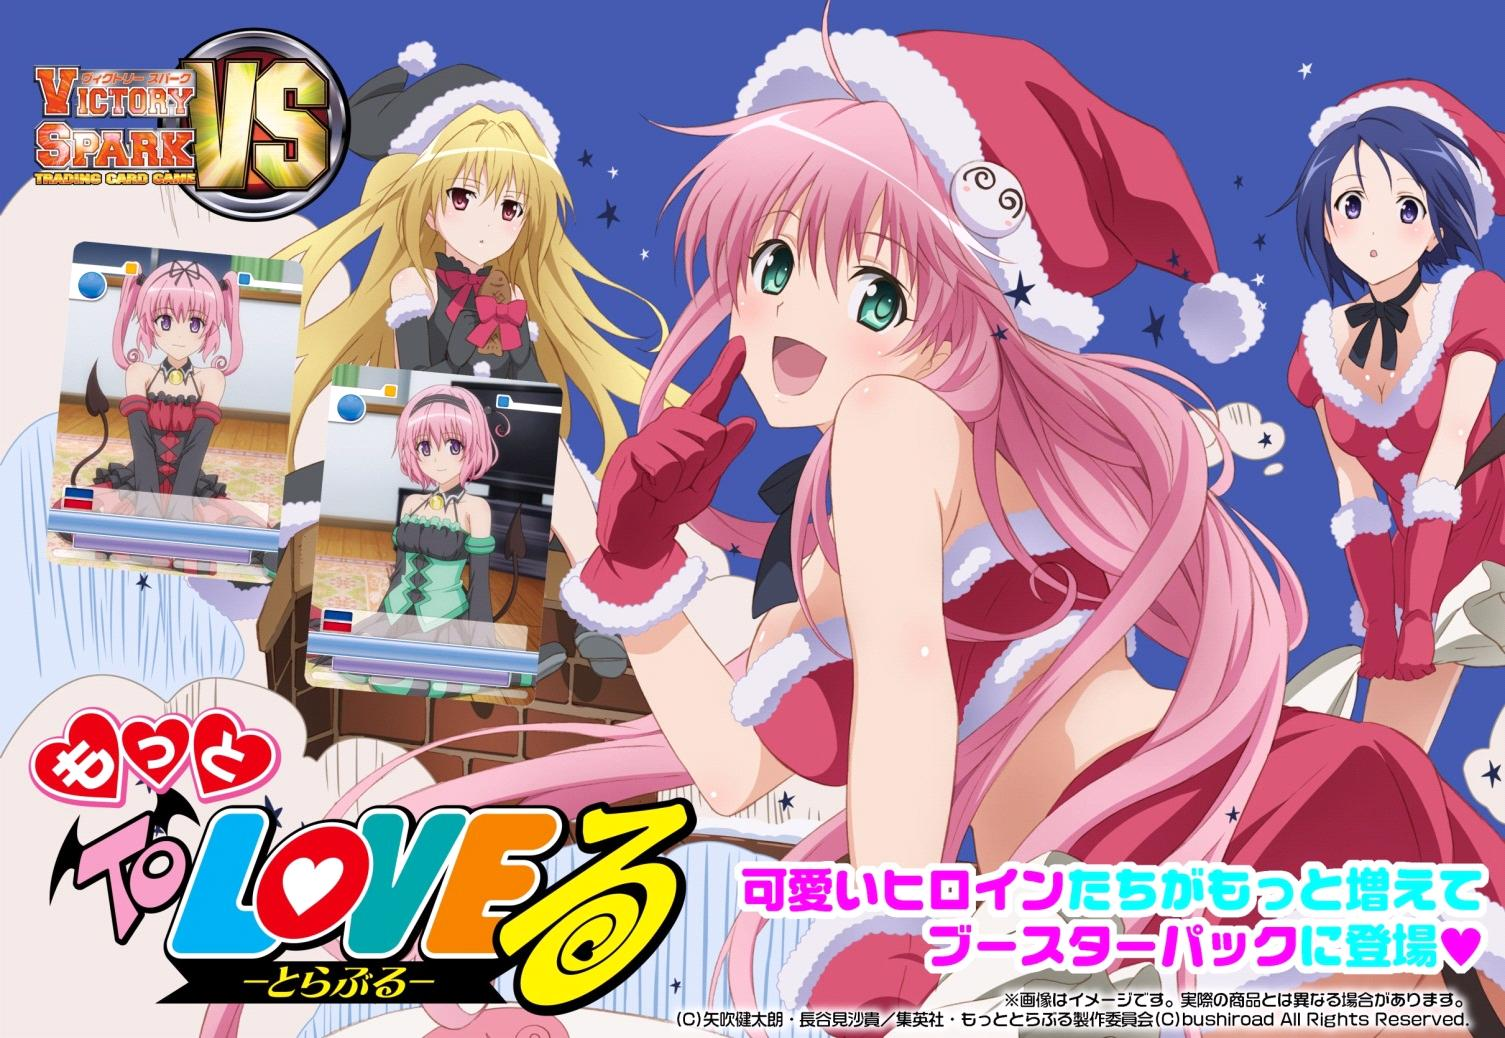 Aniplay games cd motto to love ru booster box 312275 - Motto to love ru images ...